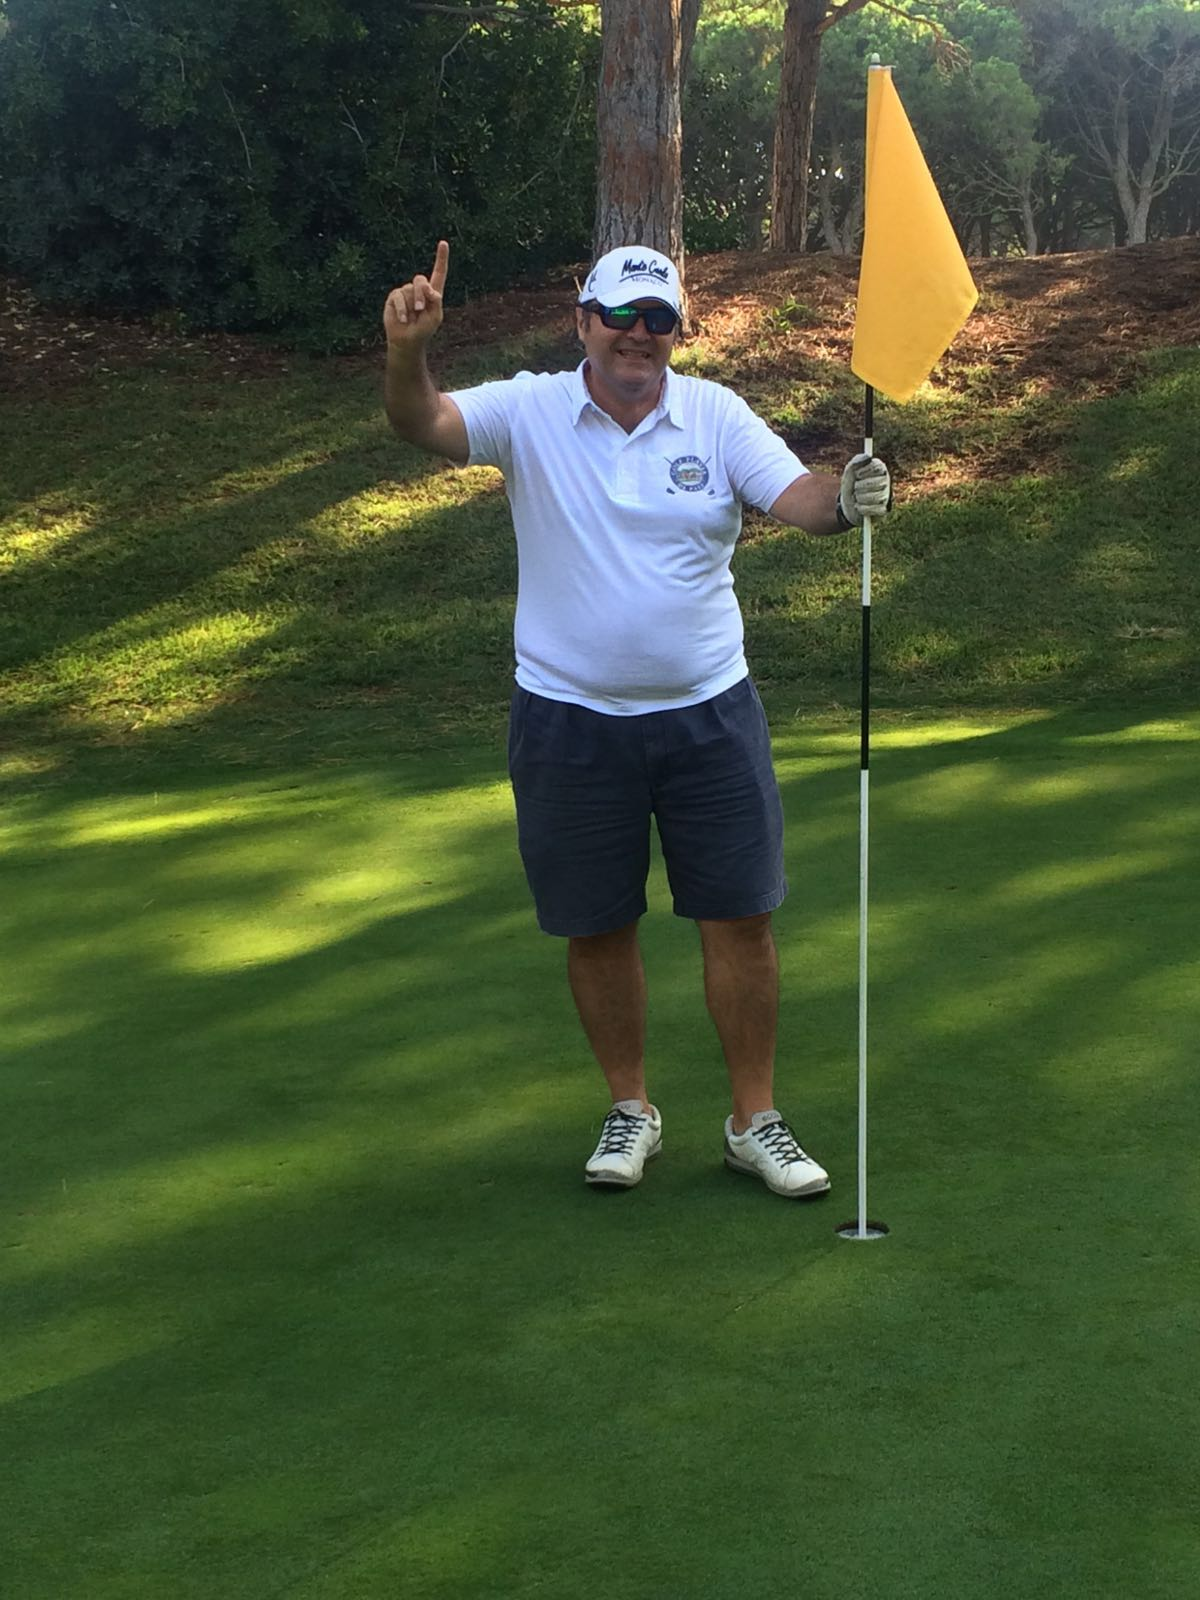 Hole in one al forat 11